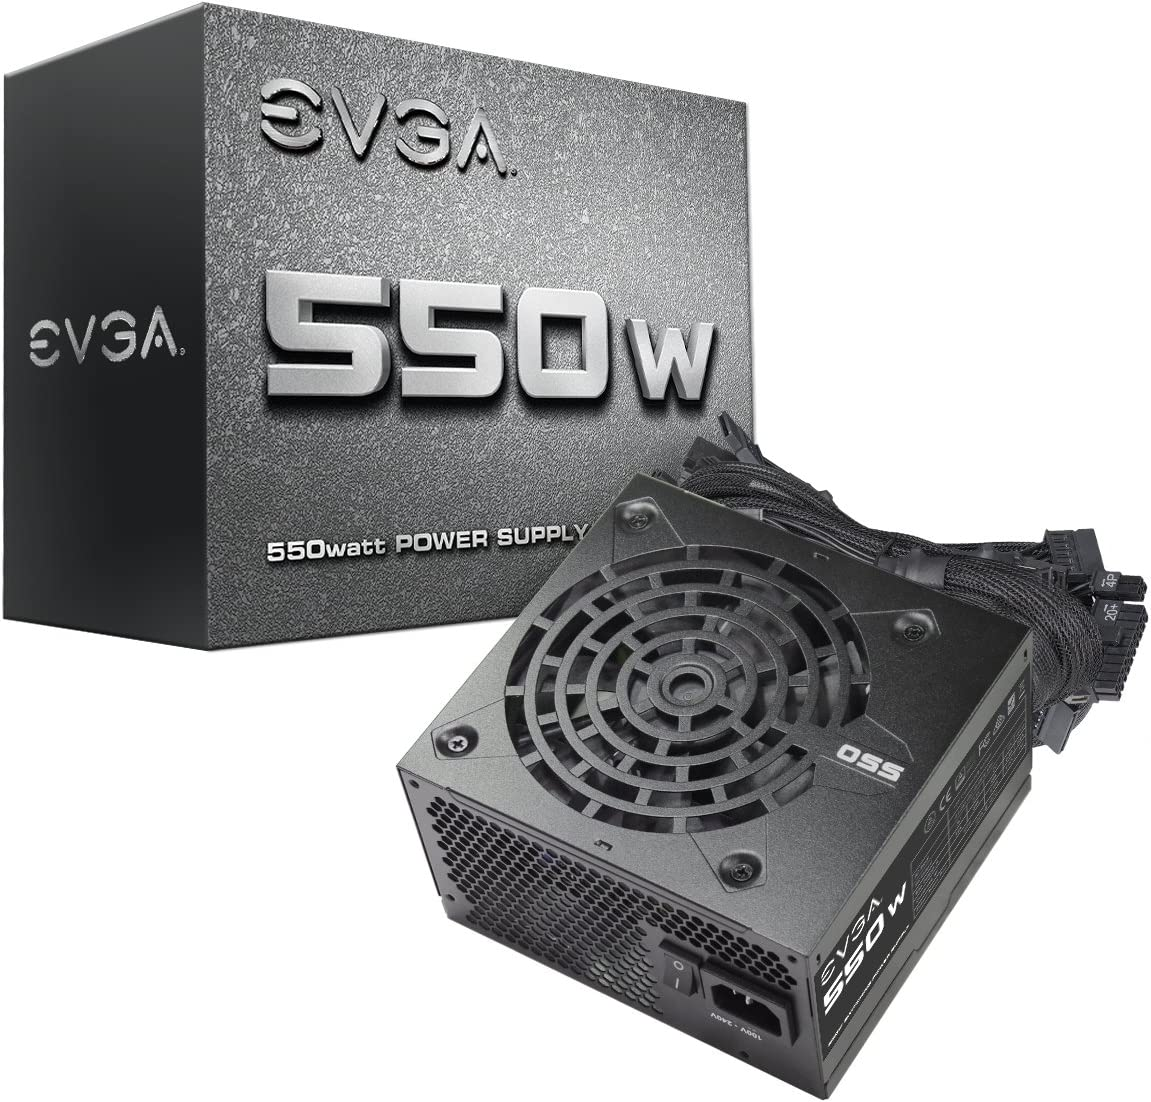 EVGA 100-N1-0550-L1 550W ATX12V EPS12V Power Supply